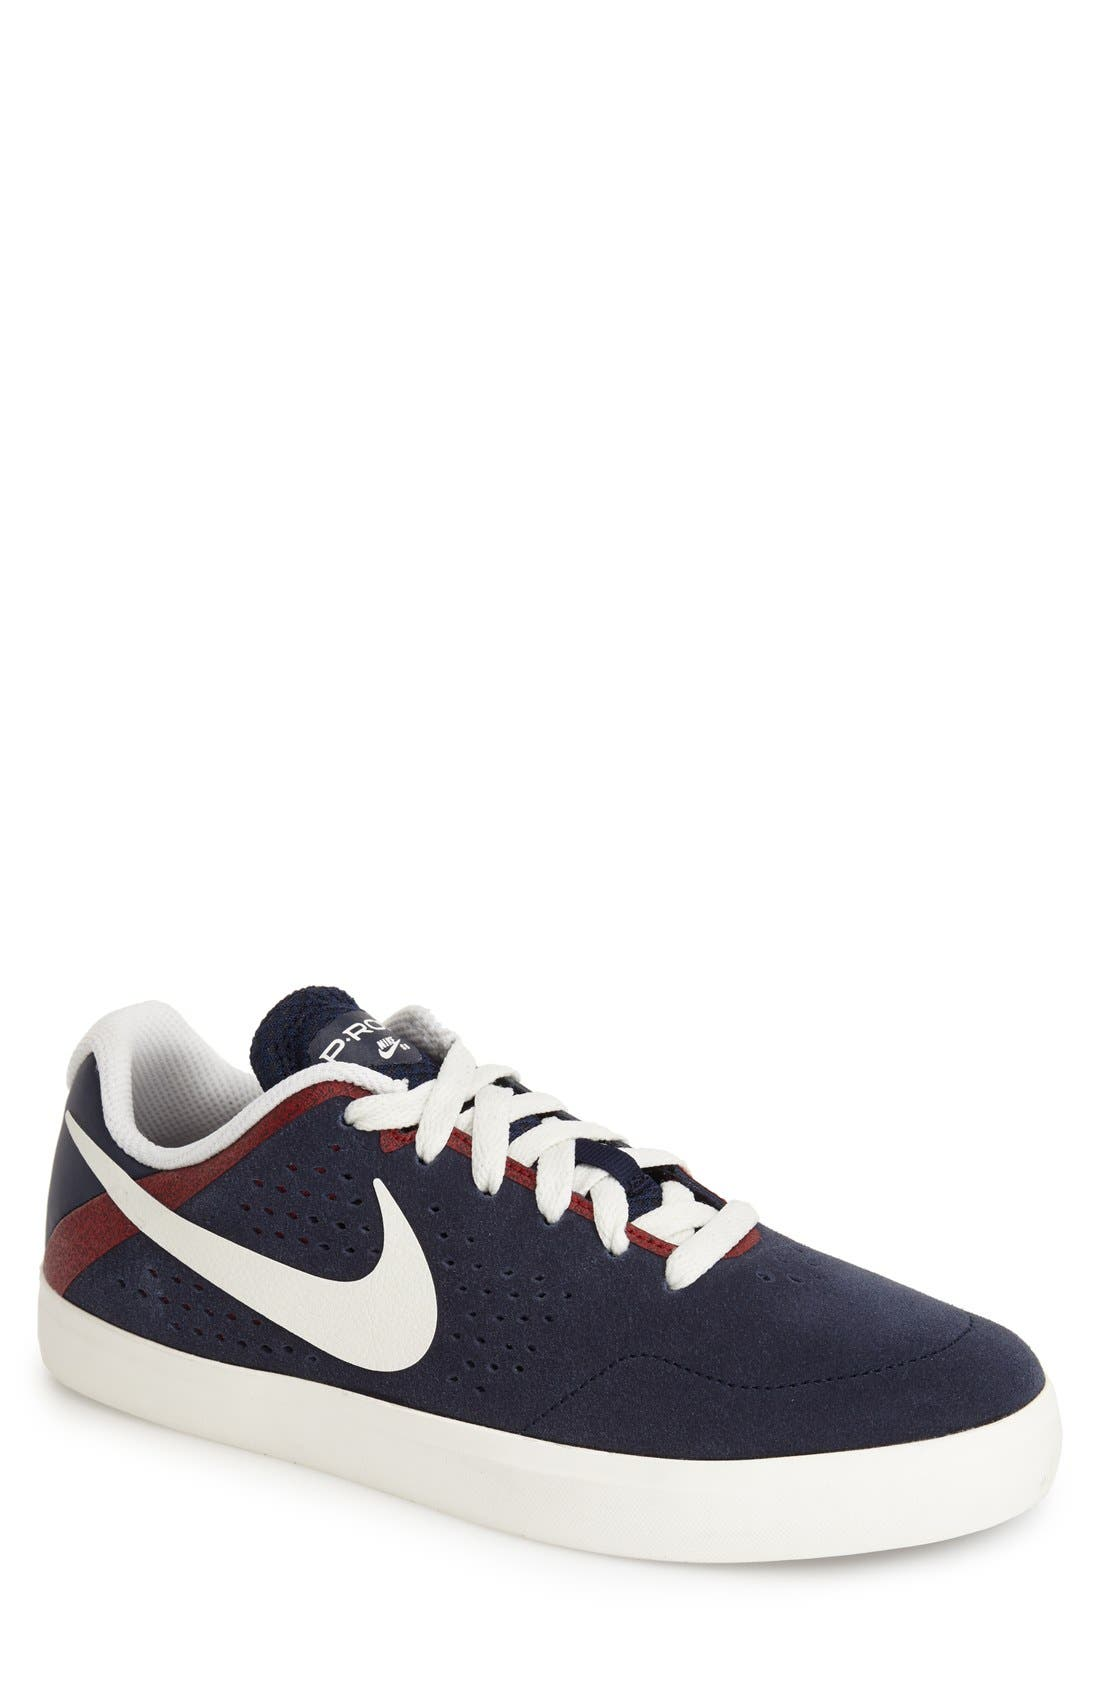 Alternate Image 1 Selected - Nike 'Paul Rodriguez CTD LR SB' Skate Shoe (Men)